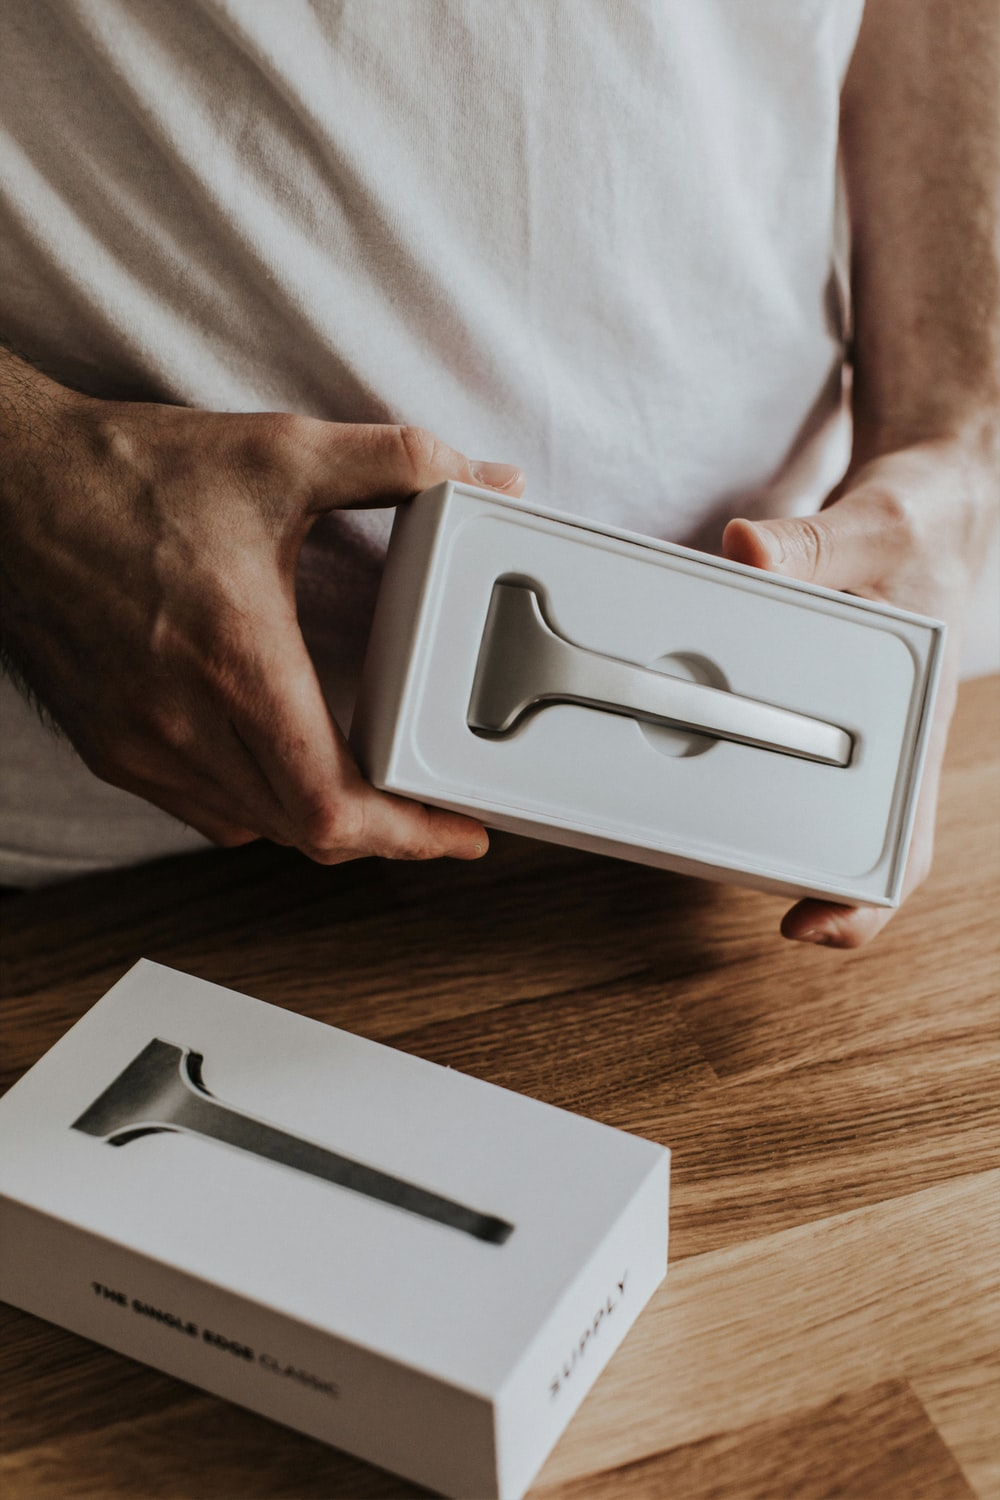 shallow focus photo of person holding gray device in white box